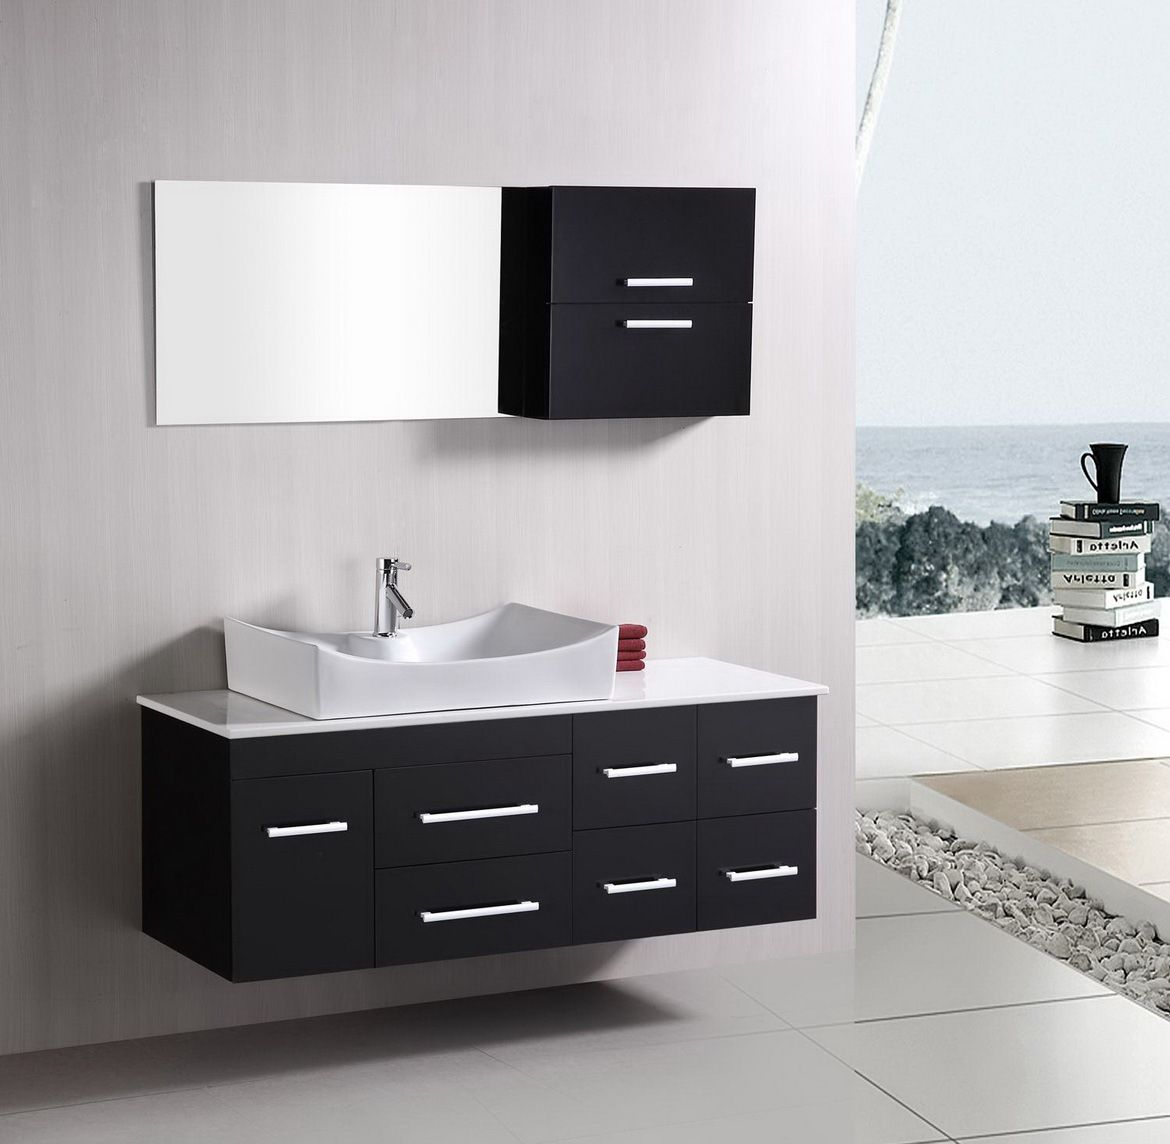 Design Bathroom Vanity Cabinets bathroom vanity contemporary, top 23 designs of modern bathroom